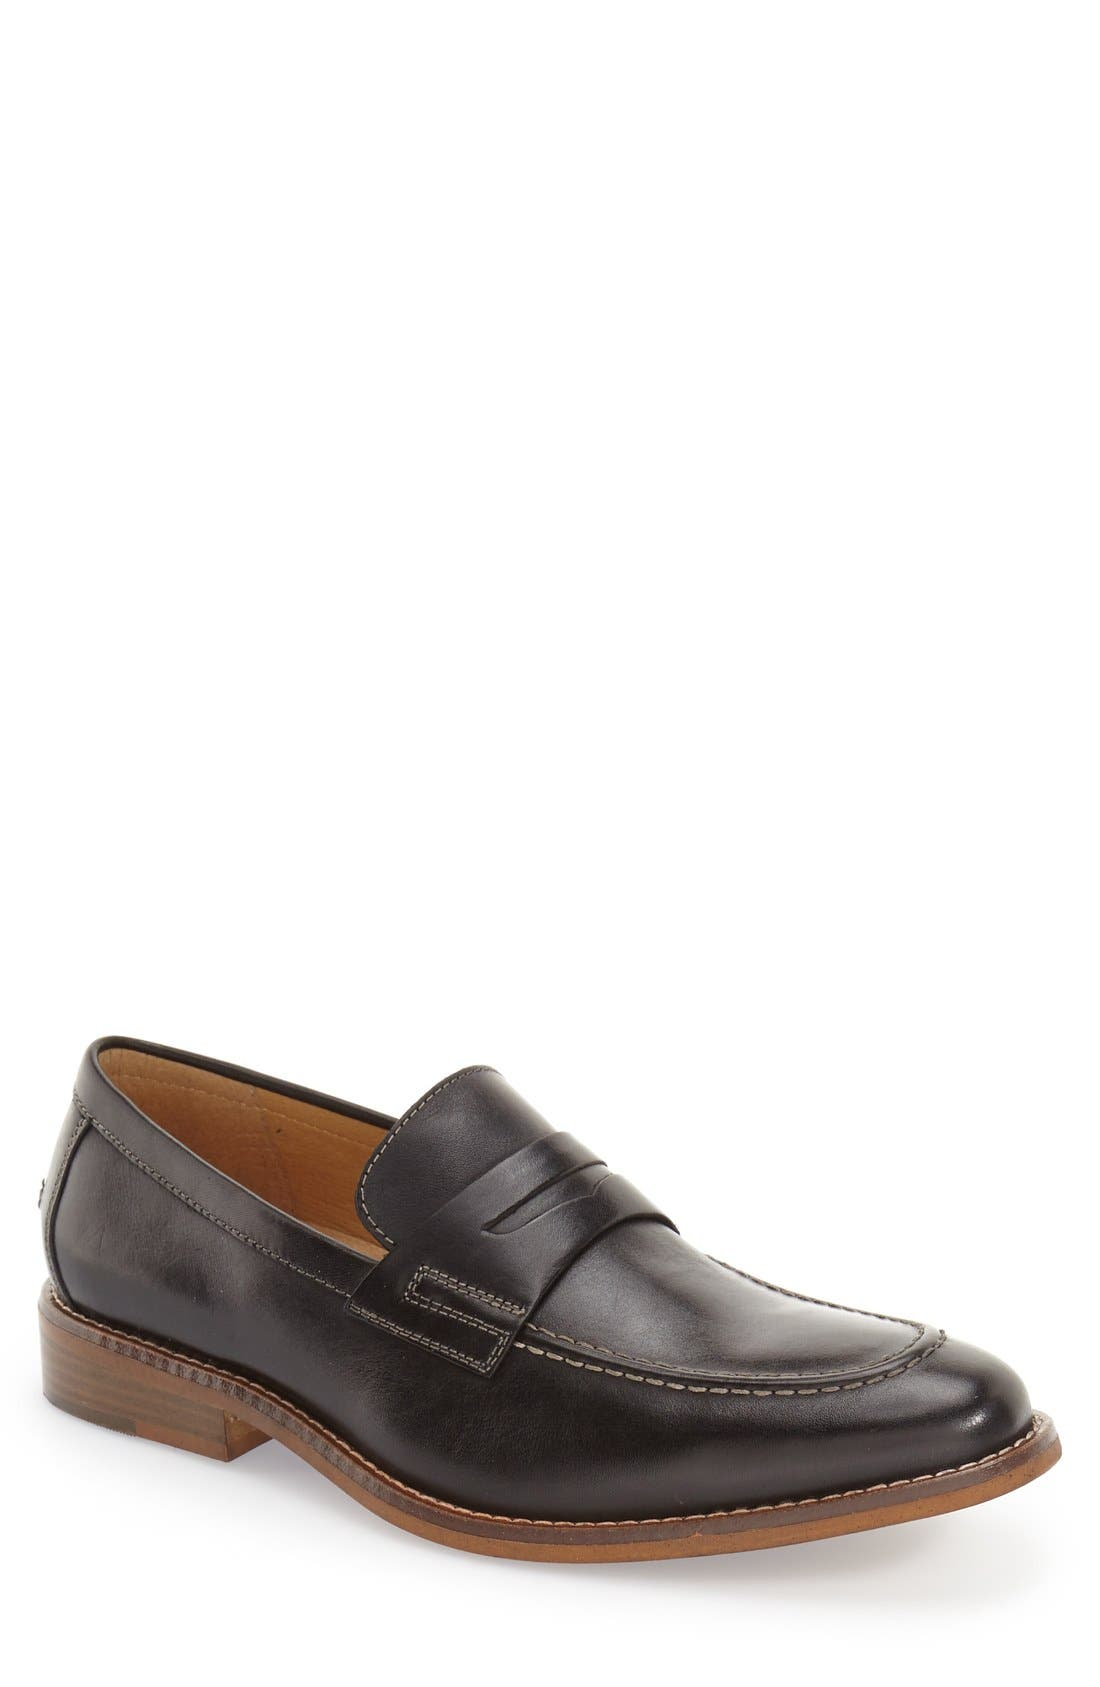 Alternate Image 1 Selected - G.H. Bass & Co. 'Conner' Penny Loafer (Men)